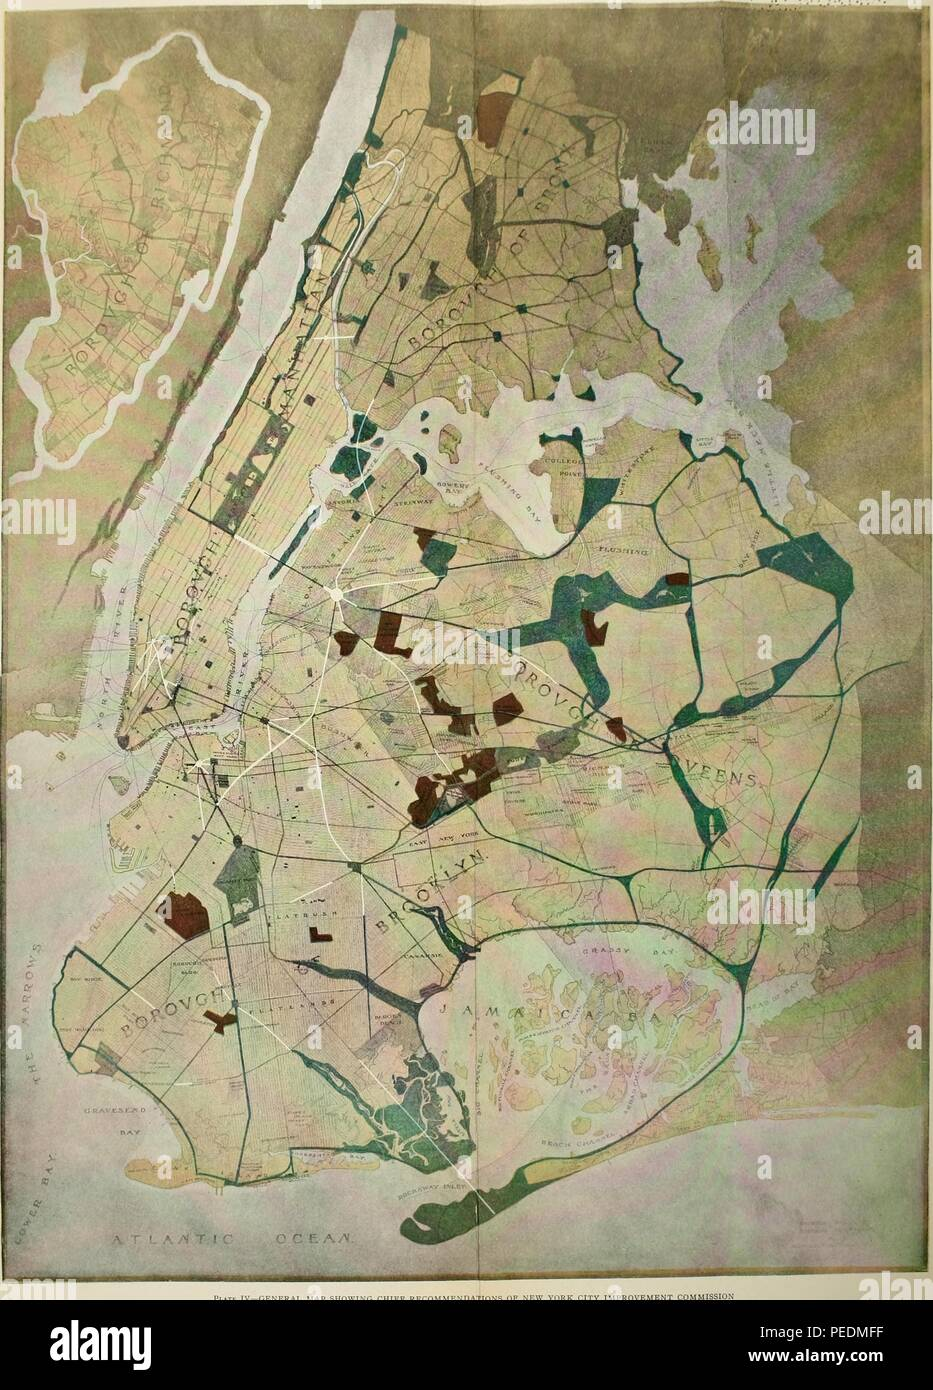 Engraved map of New York City indicating boroughs, some neighborhoods, and major geographic features/bodies of water, 1914. Courtesy Internet Archive. () - Stock Image